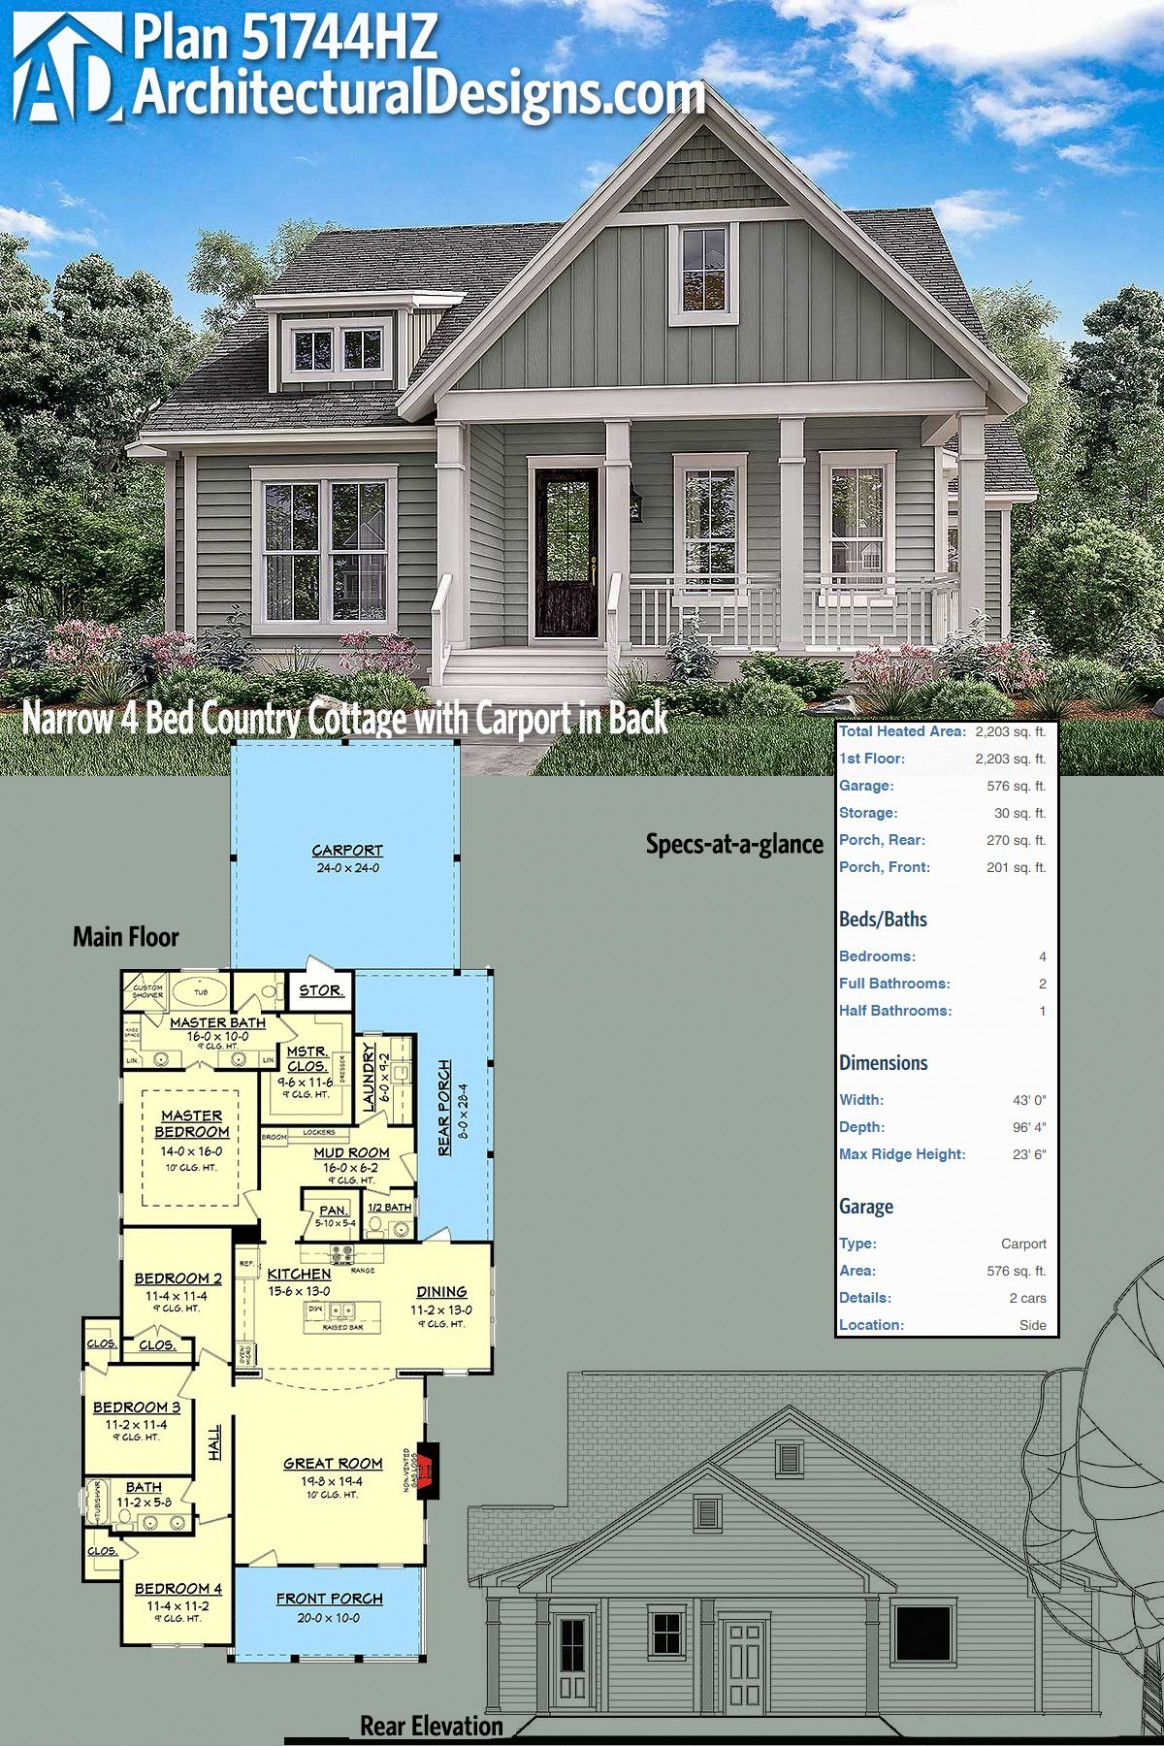 Plan Hz Narrow Bed Country Cottage With Carport Twin Single ..